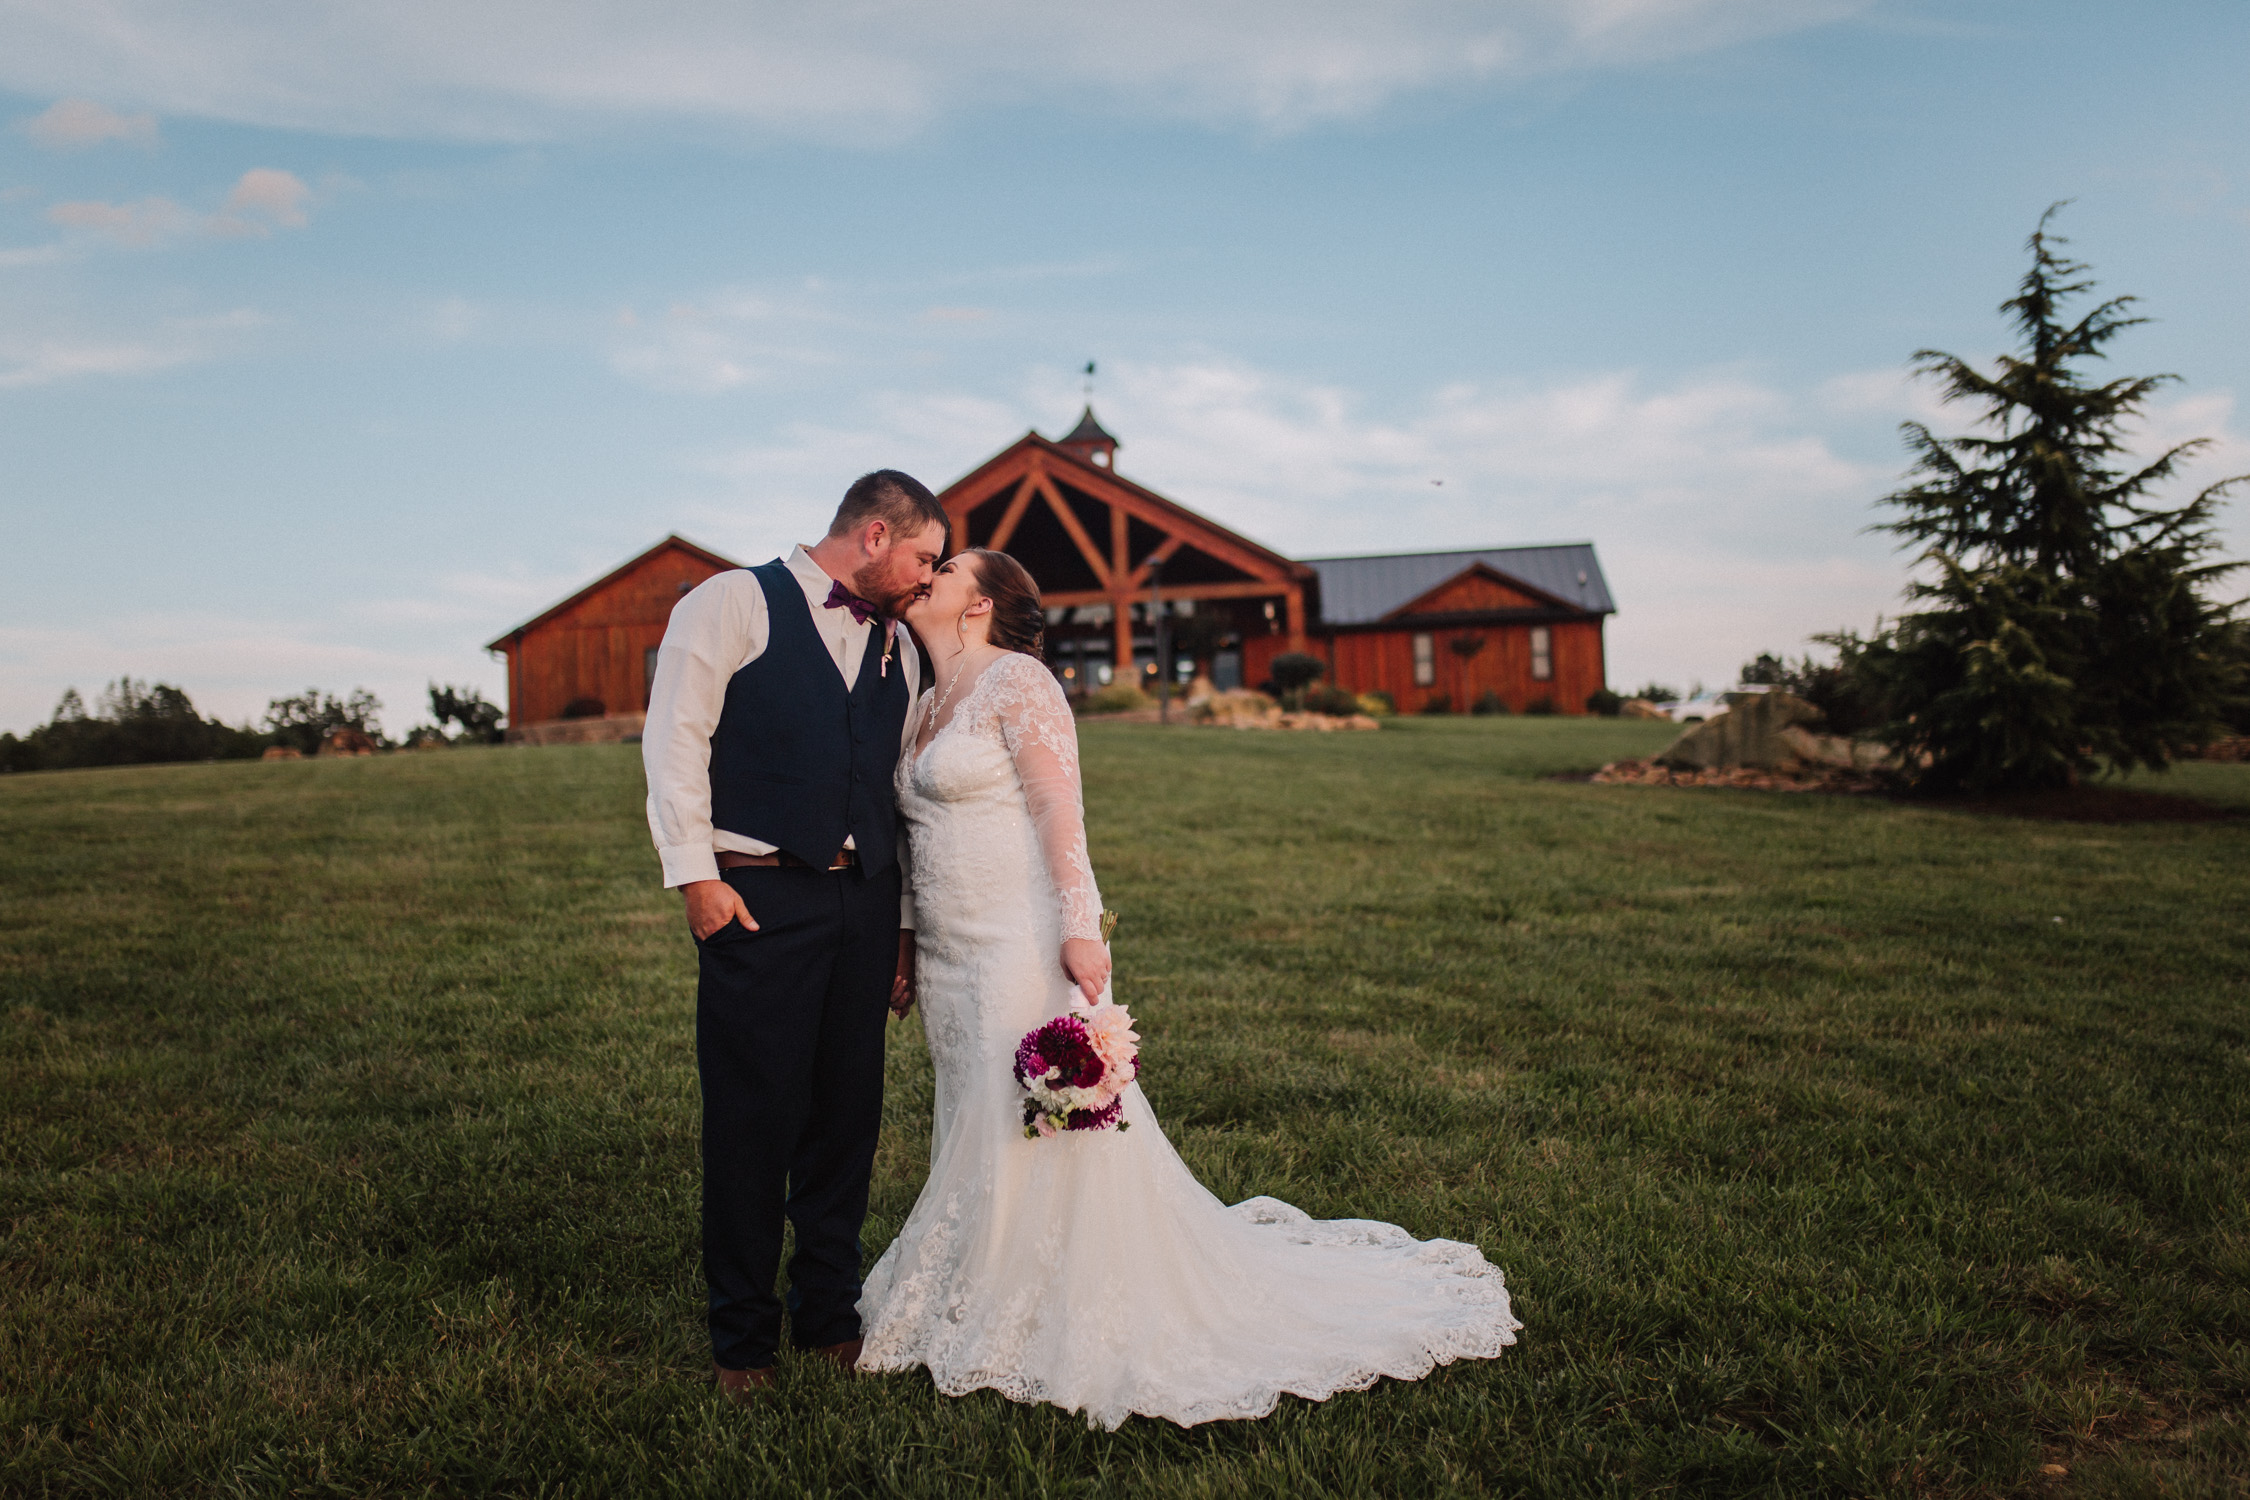 Classy, Southern, Country Wedding | Bride and Groom portrait at Atkinson Farms in Danville, Virginia | Greensboro Winston-Salem, NC Wedding Photographer